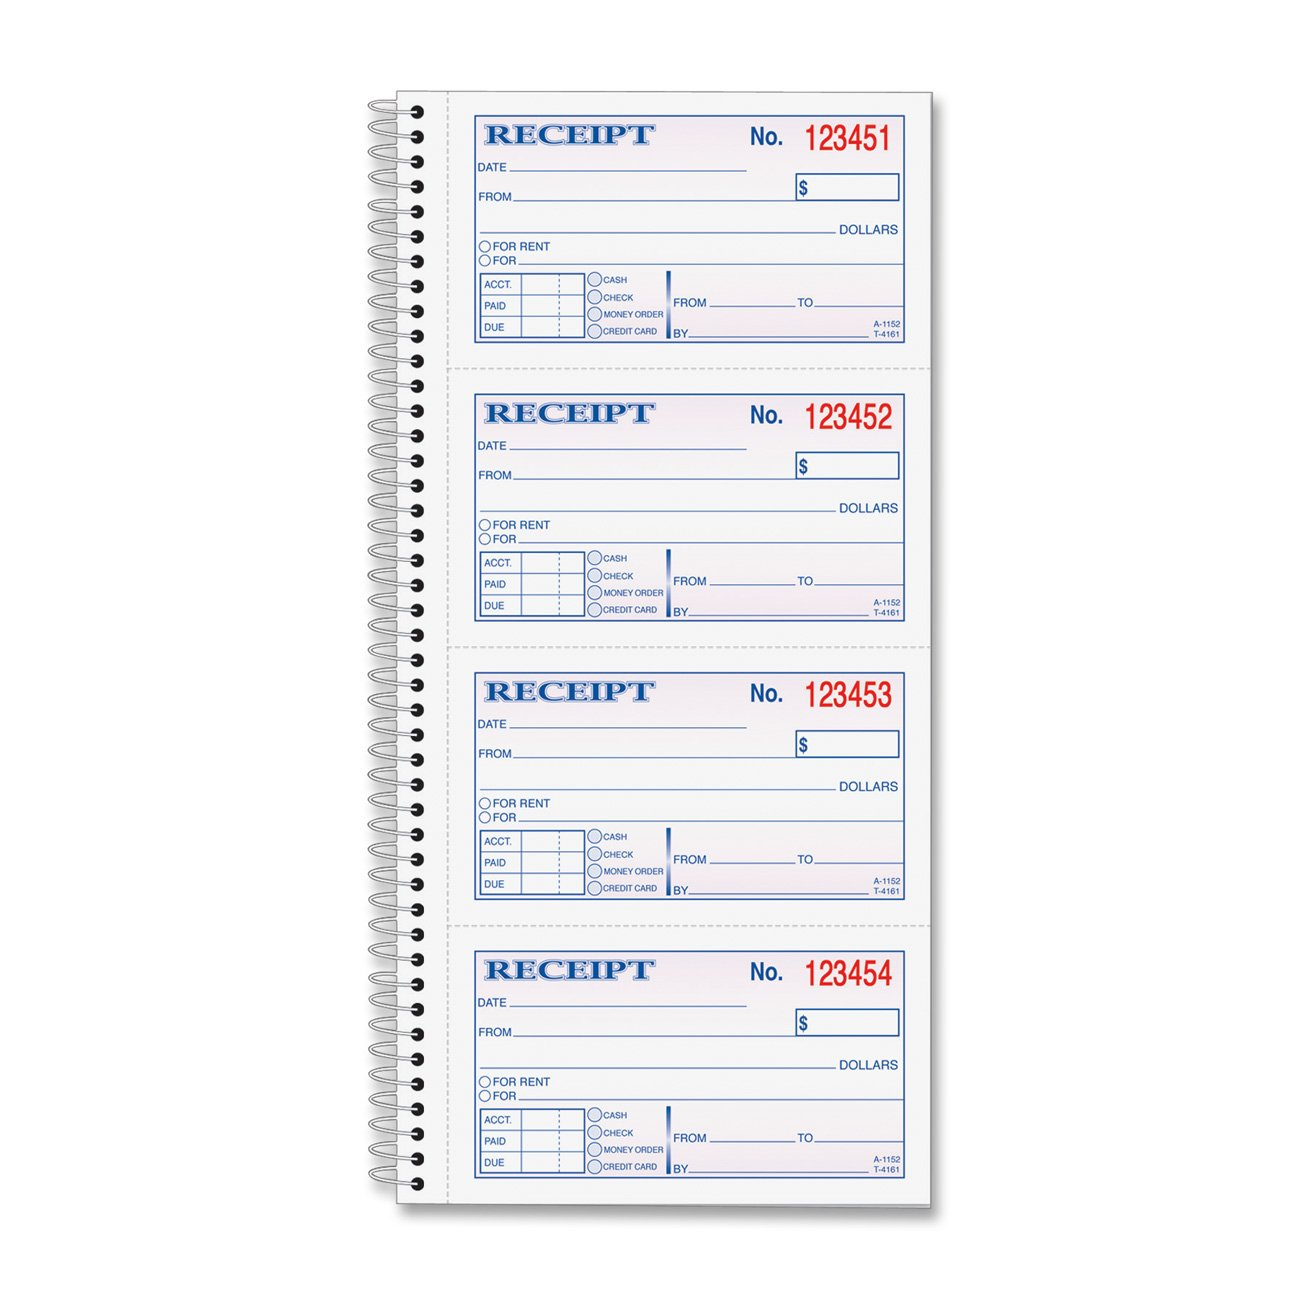 com tops money rent receipt book part carbonless  com tops money rent receipt book 2 part carbonless 11 x 5 25 inches 4 receipts page 200 sets per book 4161 blank receipt forms office